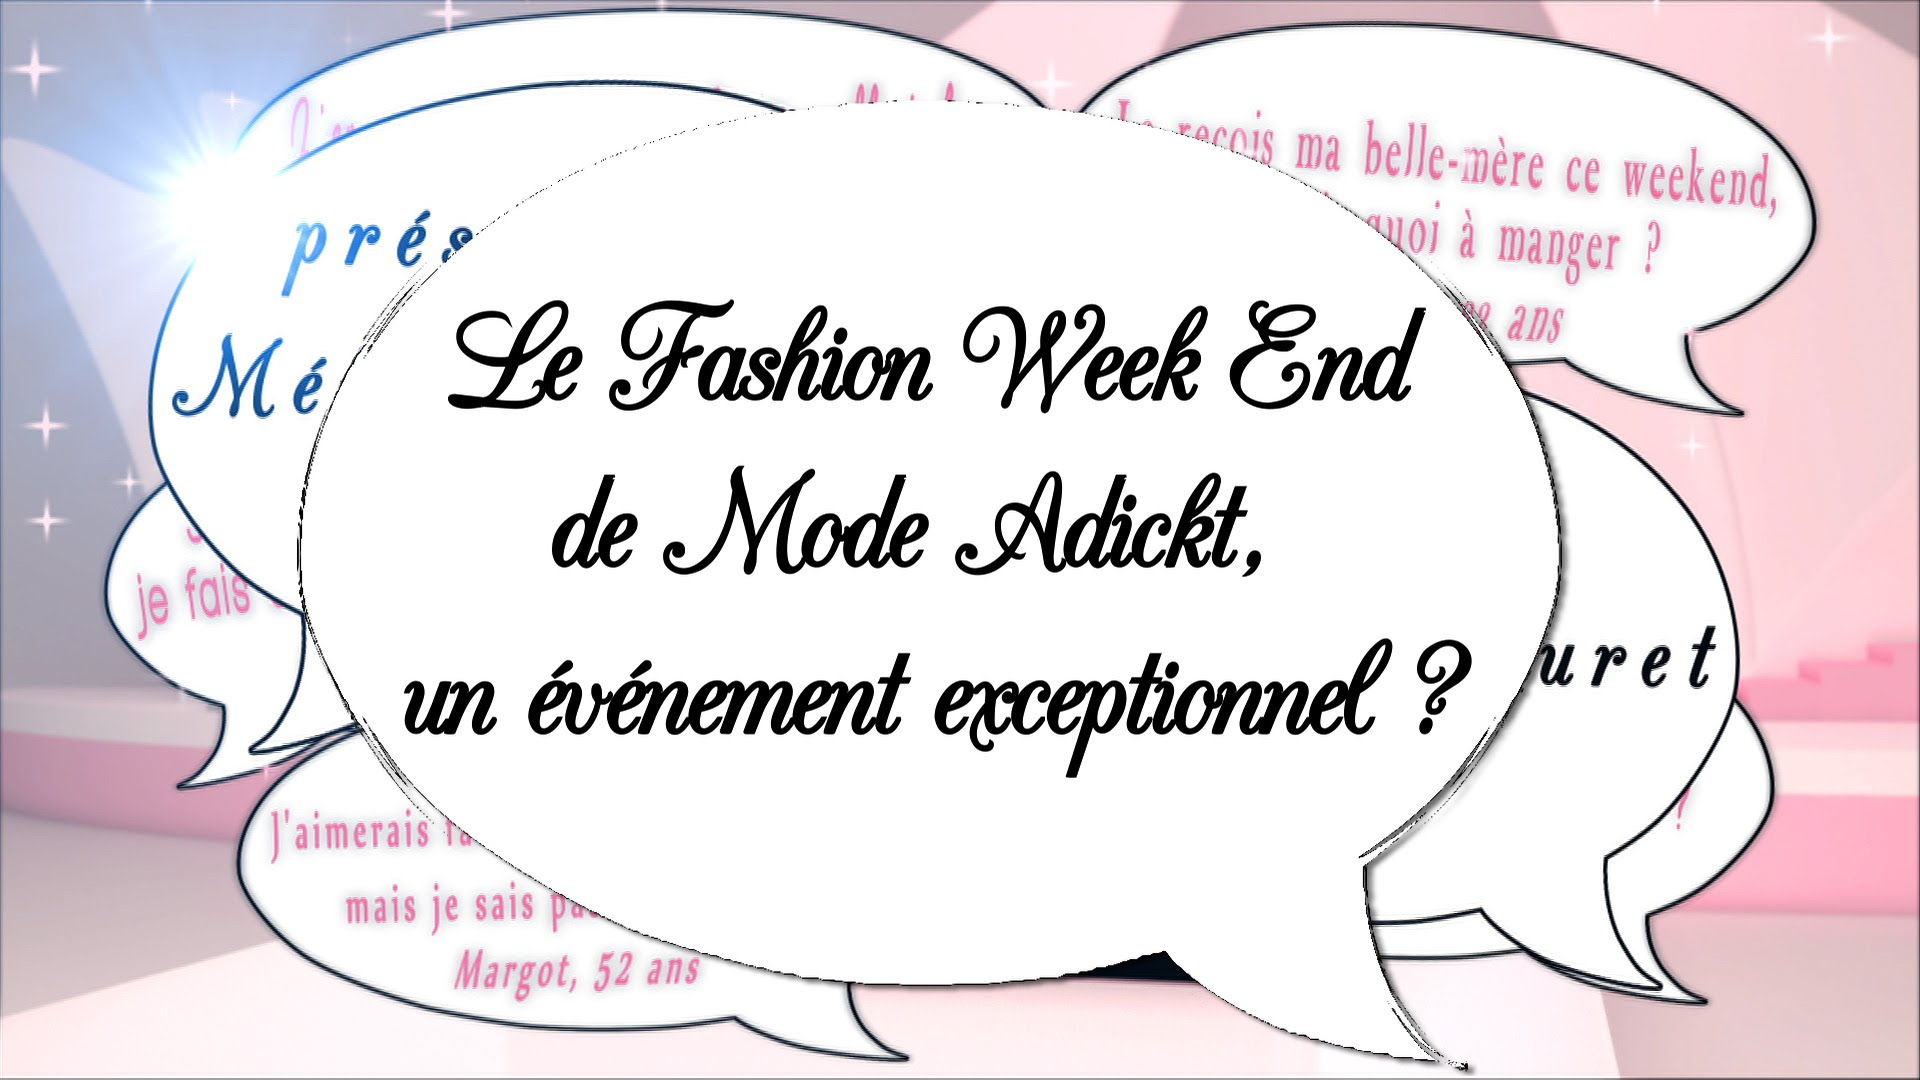 Comment ça … Tu n'es pas à La Fashion Week-End de Mode Adickt ?